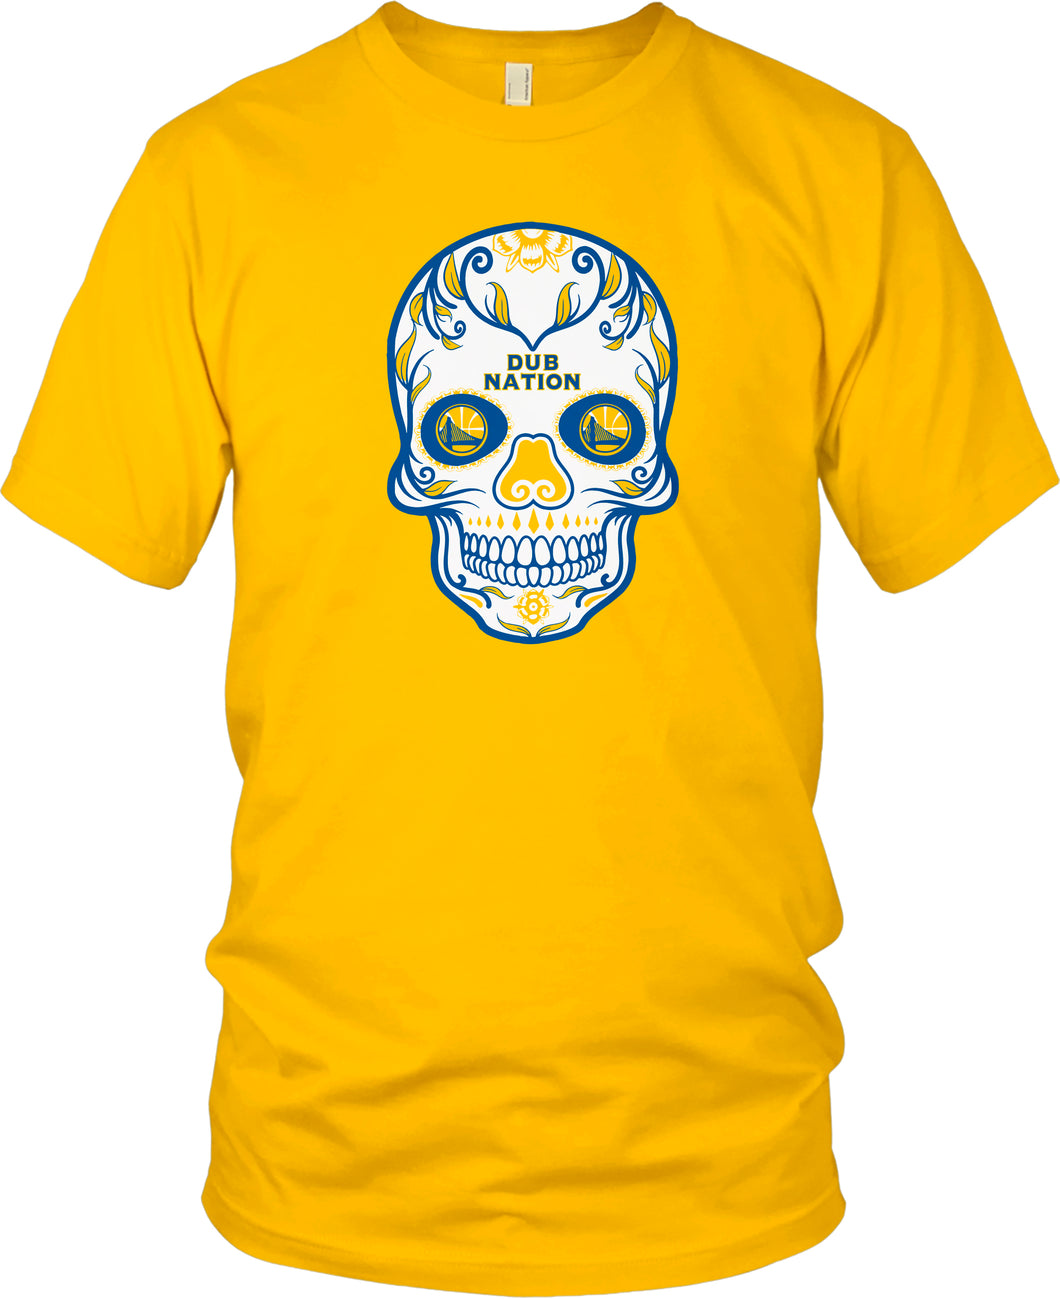 DUB NATION CANDY SKULL GOLD T-SHIRT (LIMITED EDITION) GOLDEN STATE WARRIORS EDITION